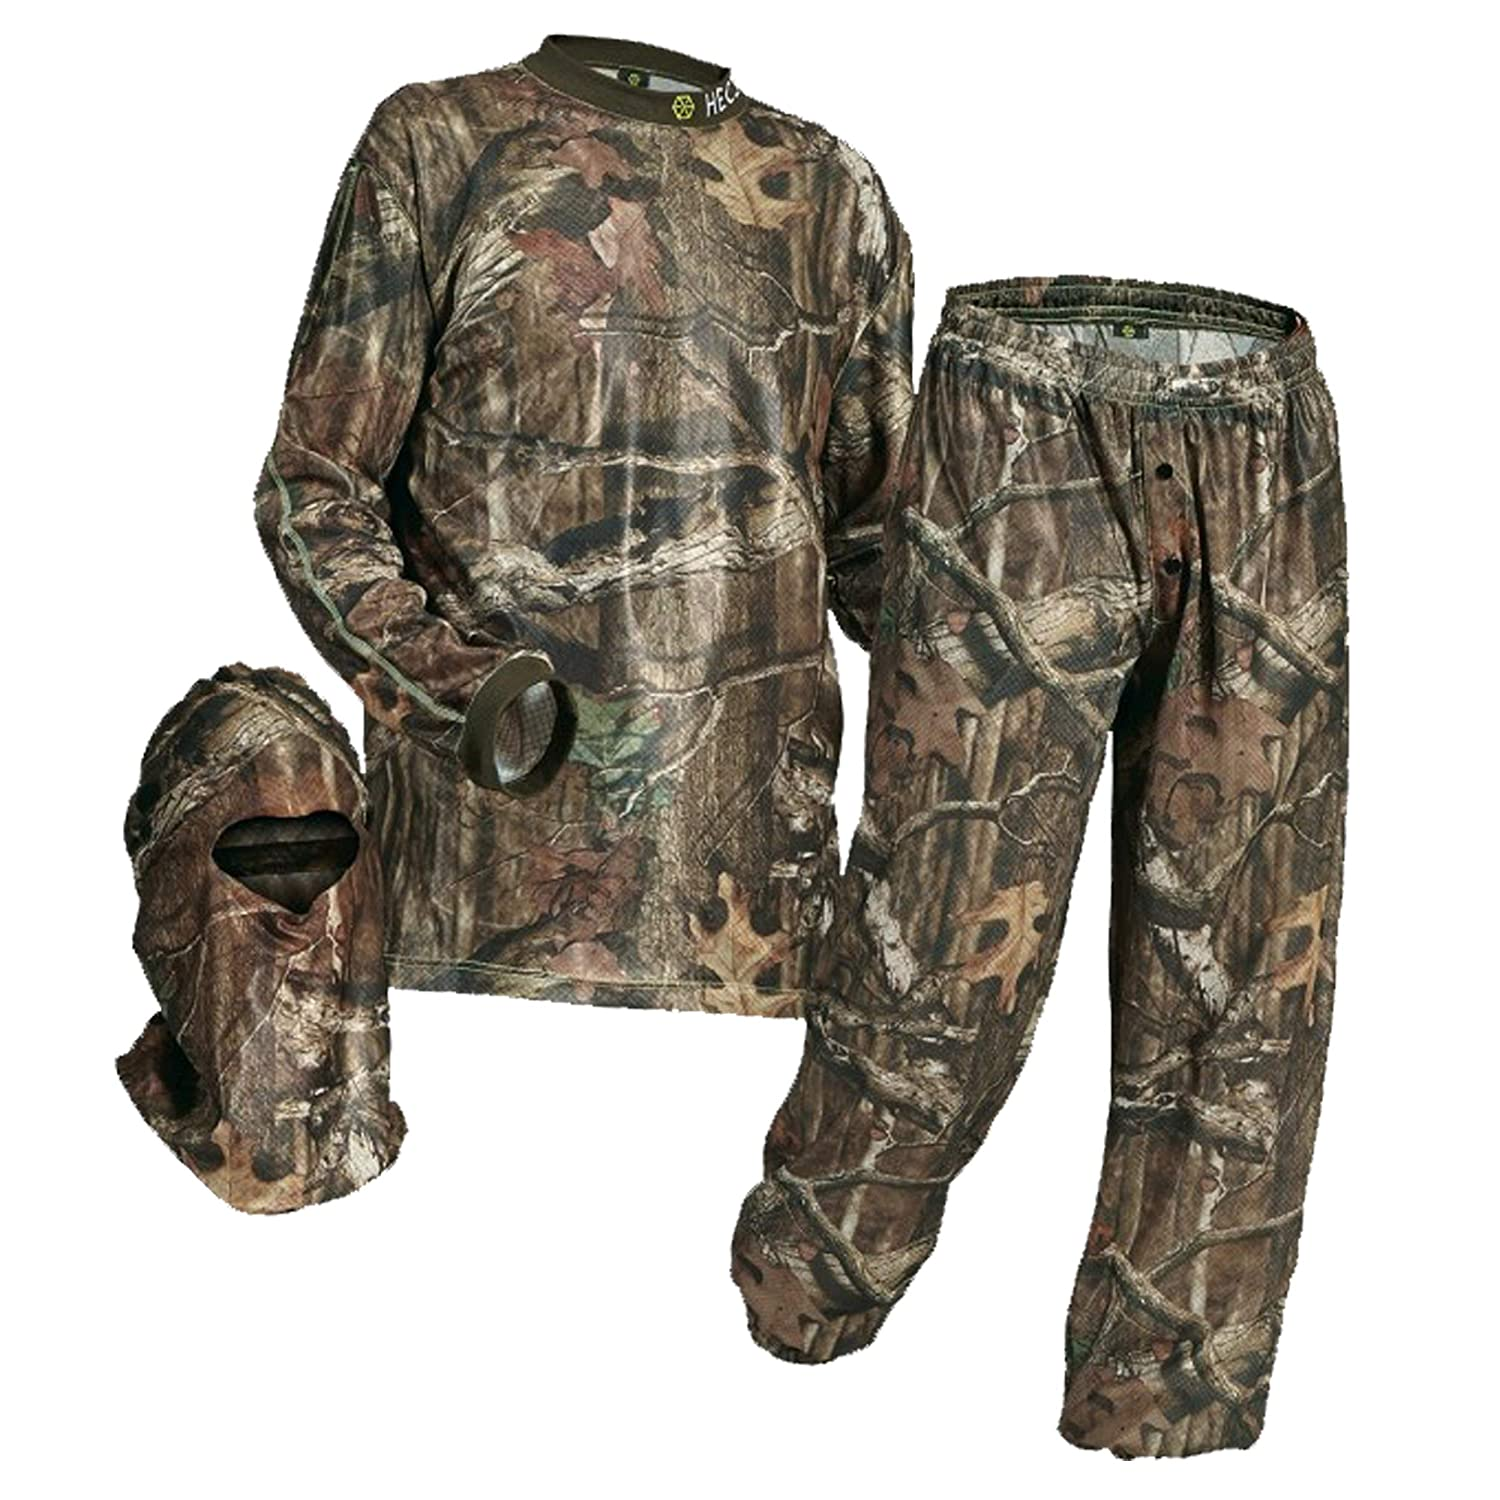 489f4346eeeca Amazon.com : HECS Hunting - Energy Concealing 3-Piece Hunting Suit -  Includes Shirt, Pants & Headcover : Clothing